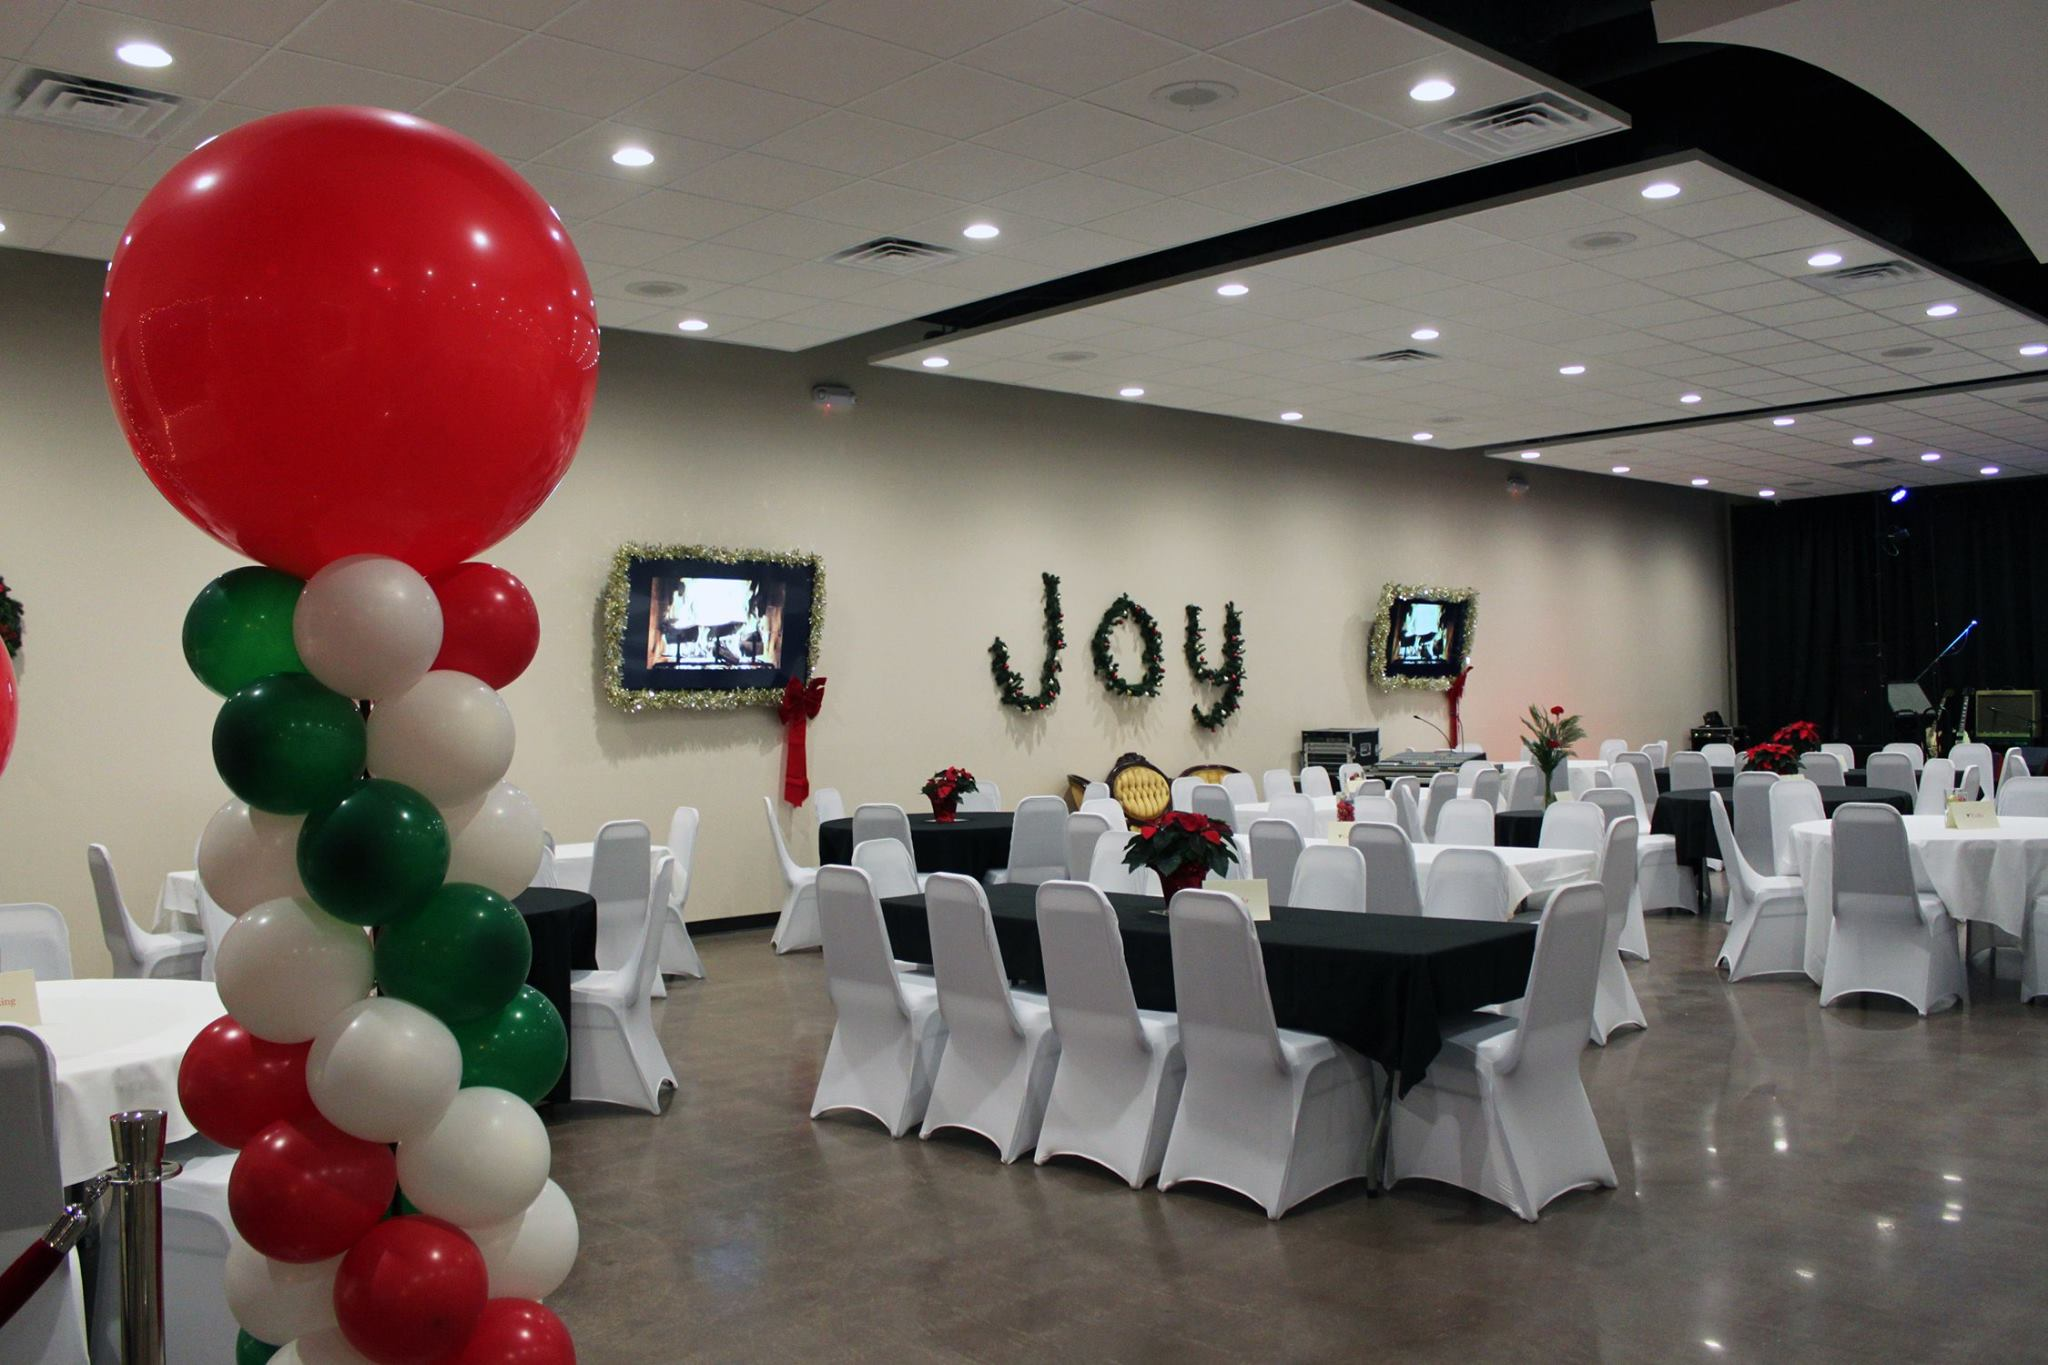 holiday party event setup with balloons and tables